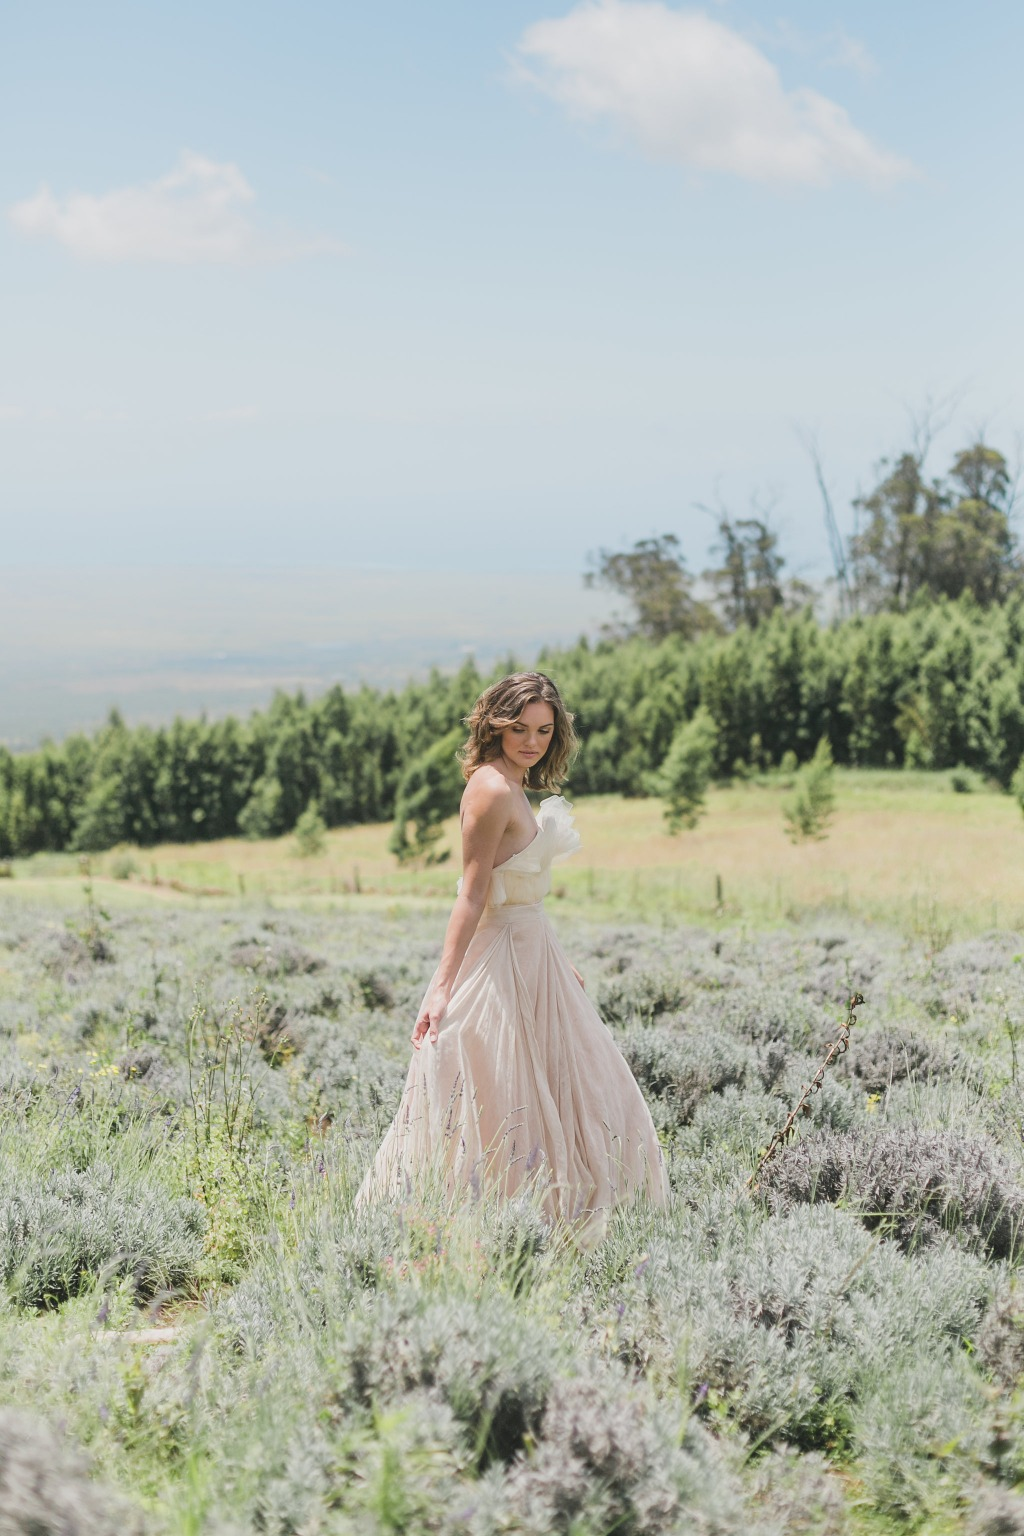 Maui Wedding Photographer | Maui Weddings | Luxury Hawaiian Wedding | Styled Wedding Shoot | Ali'i Lavender Farm Wedding | Botanical